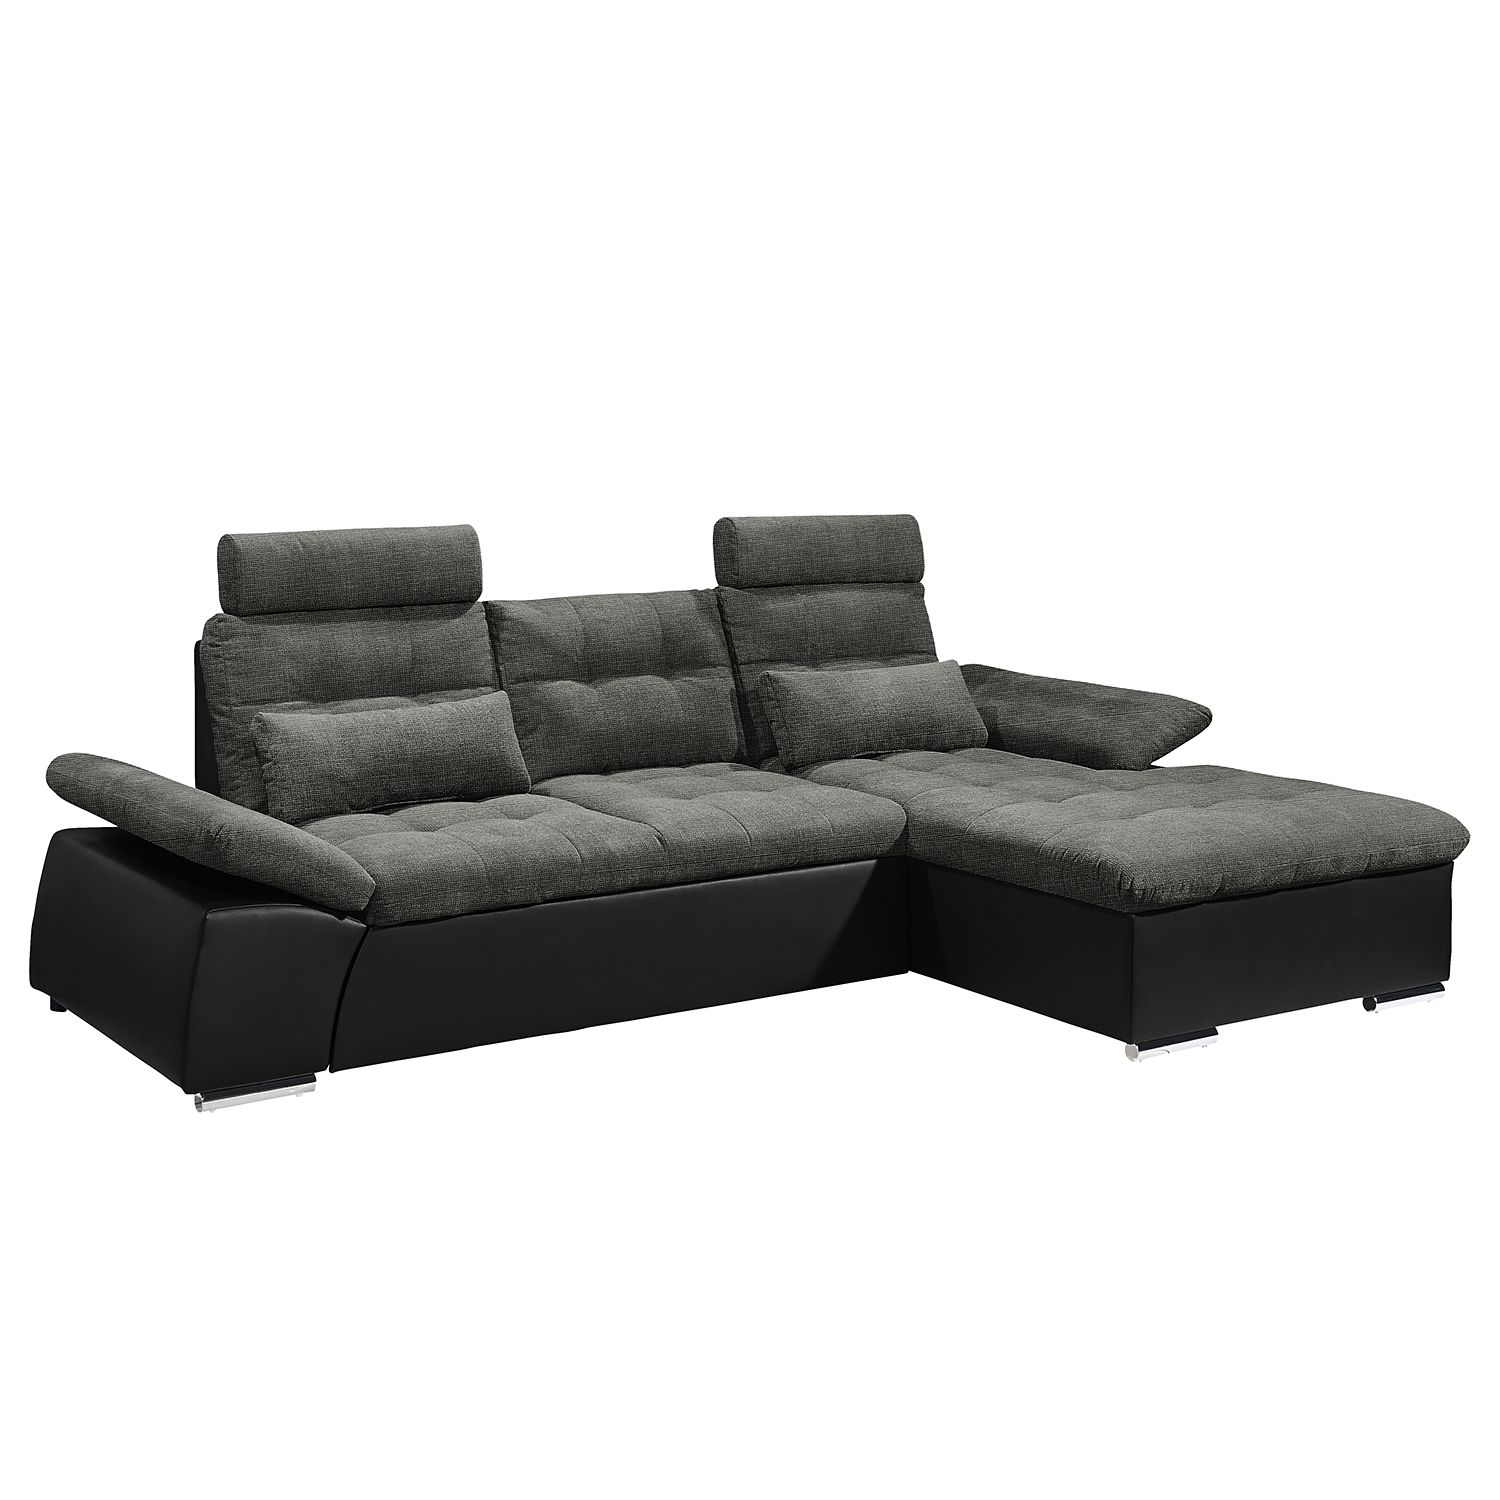 ecksofa puntiro mit schlaffunktion. Black Bedroom Furniture Sets. Home Design Ideas